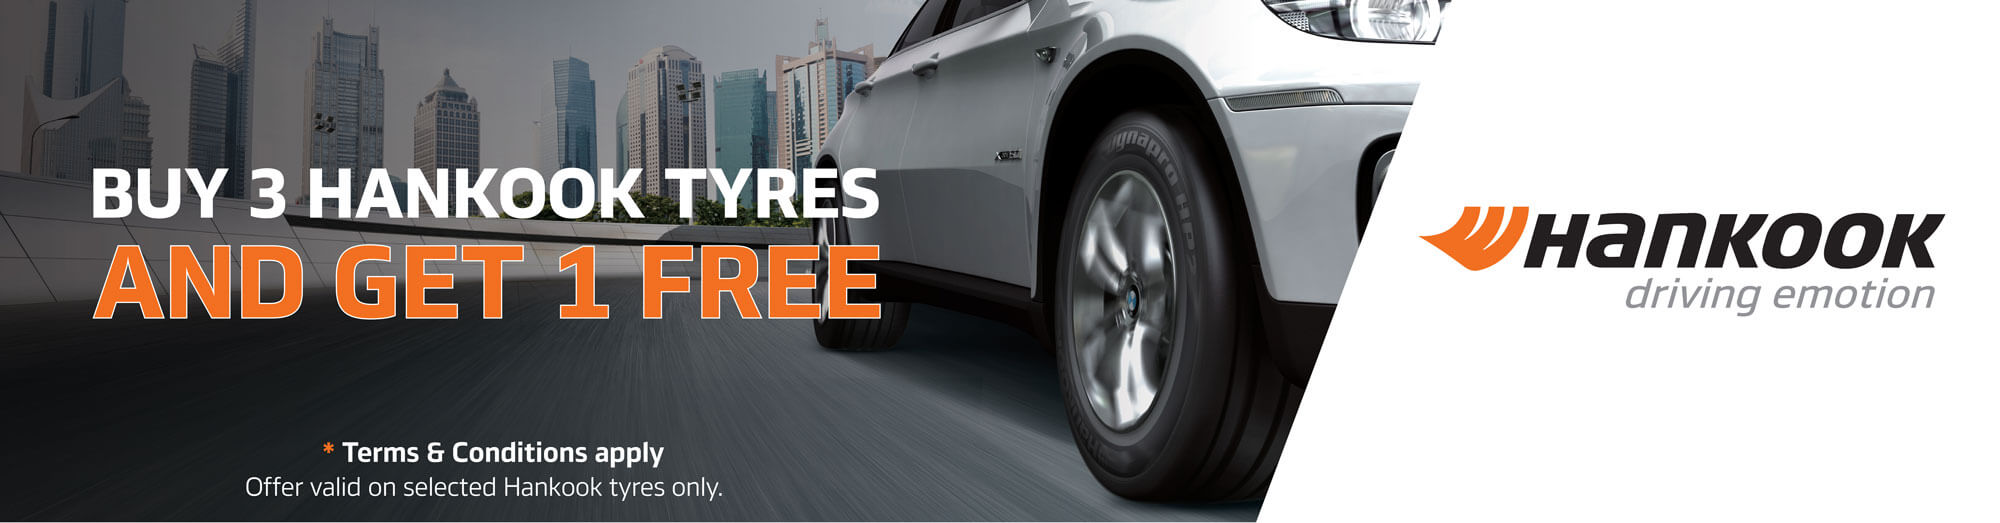 Buy 3 Hankook Tyres And Get 1 Free